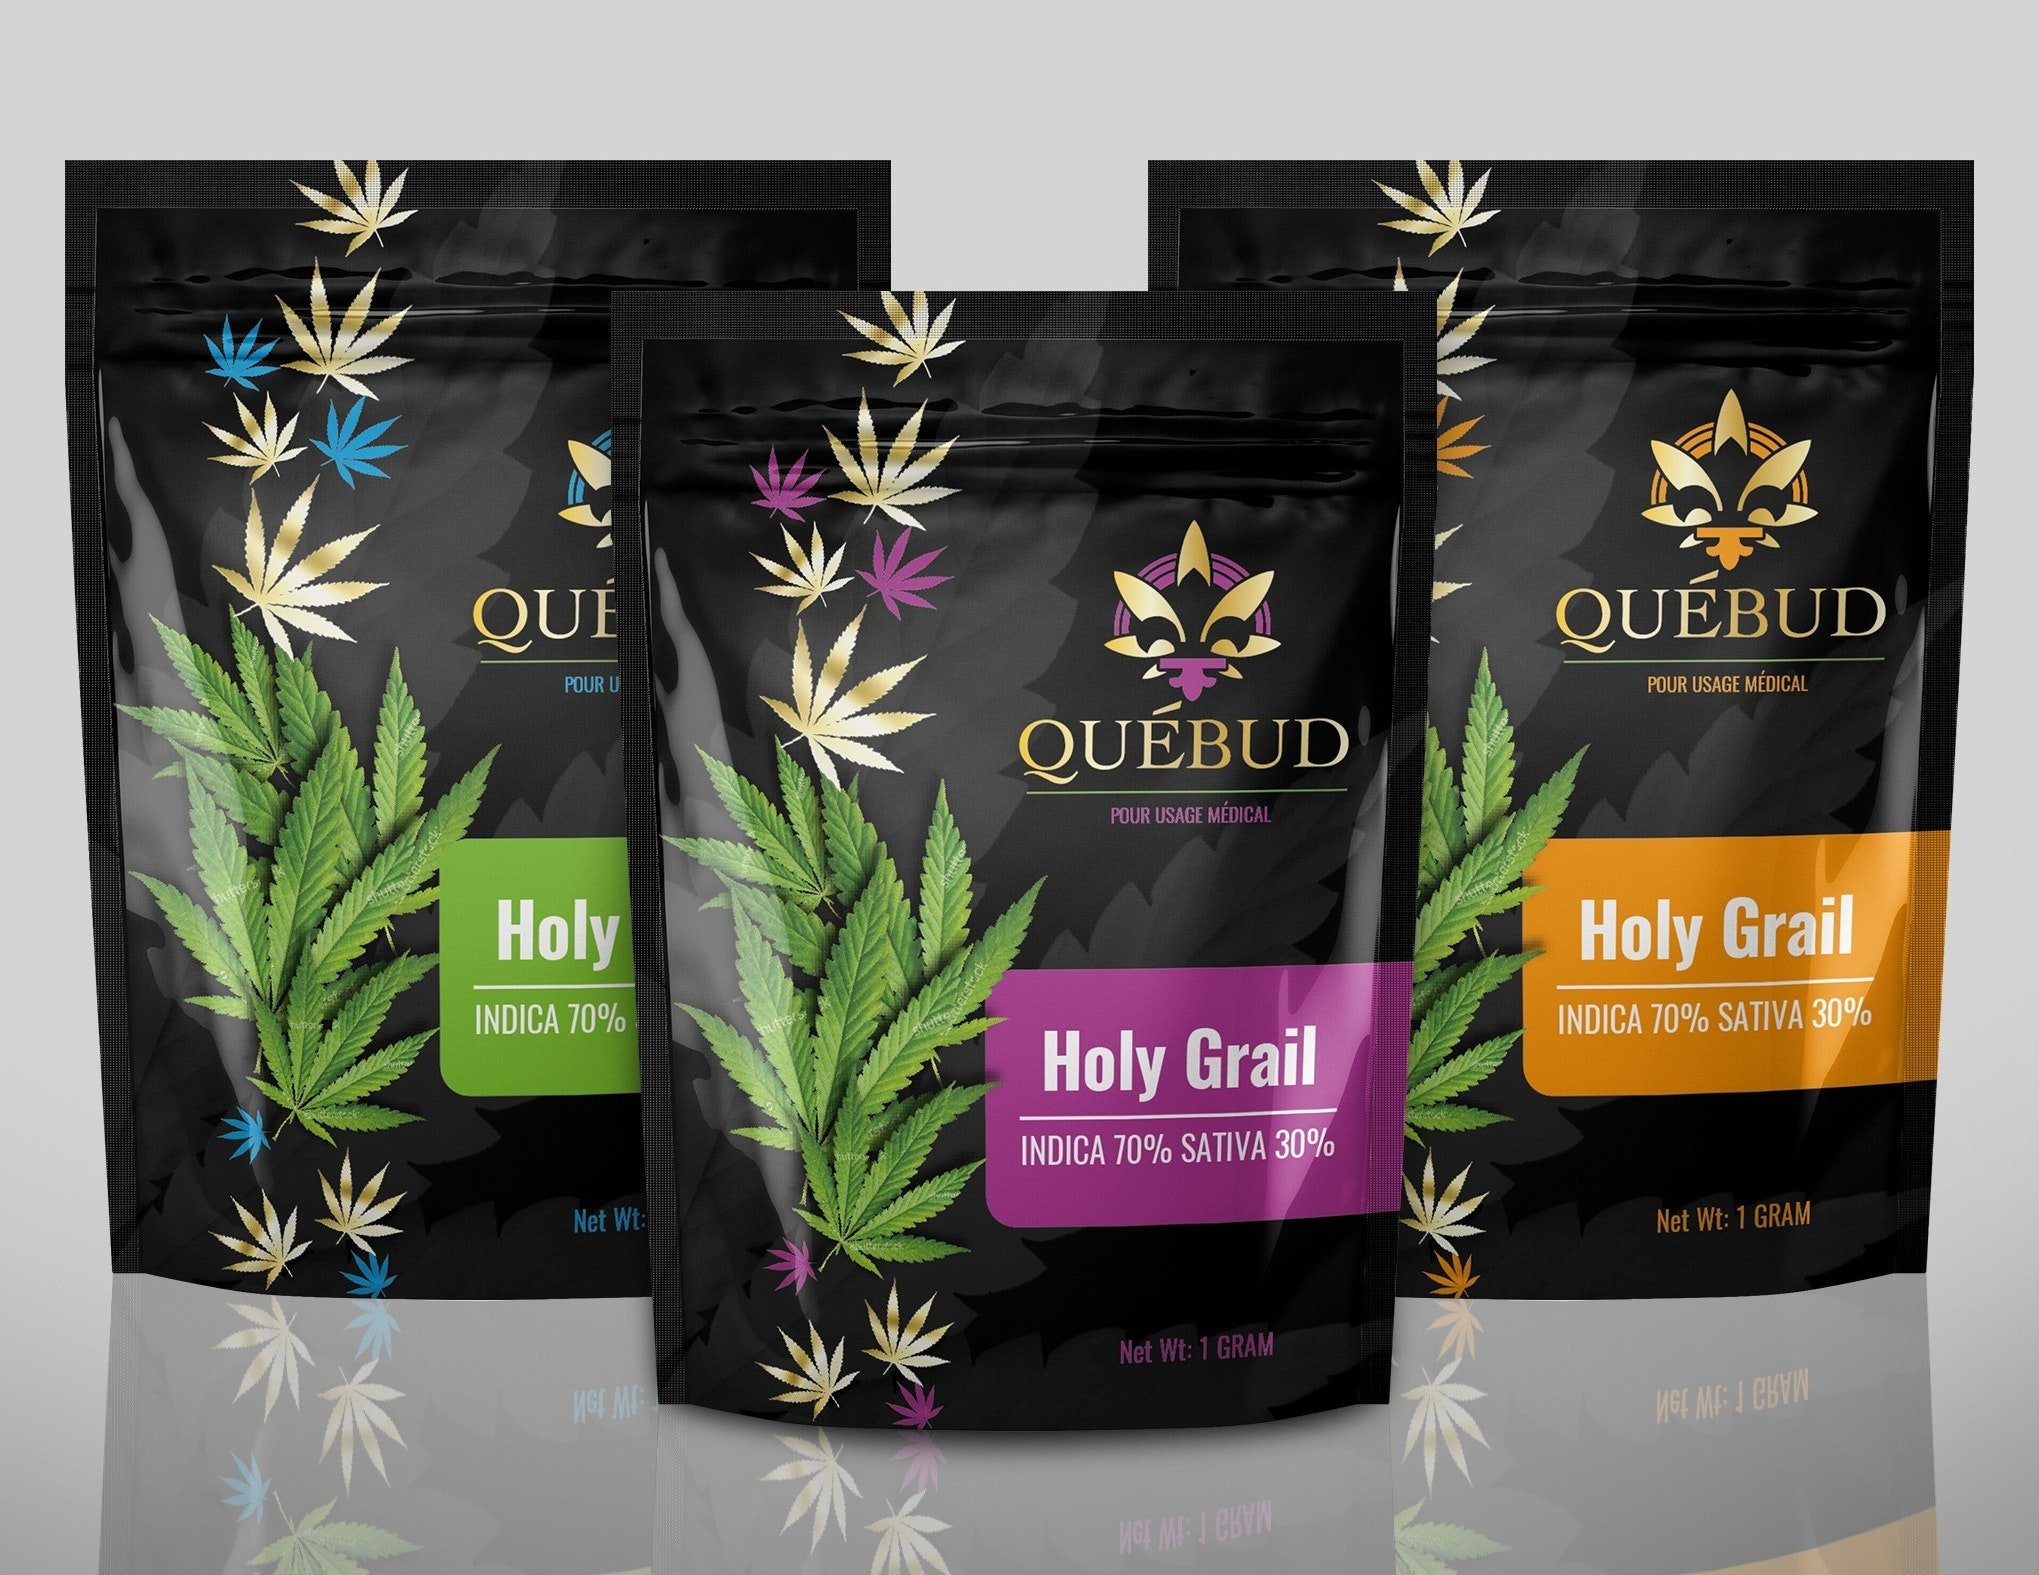 Colorful packaging design for quebud